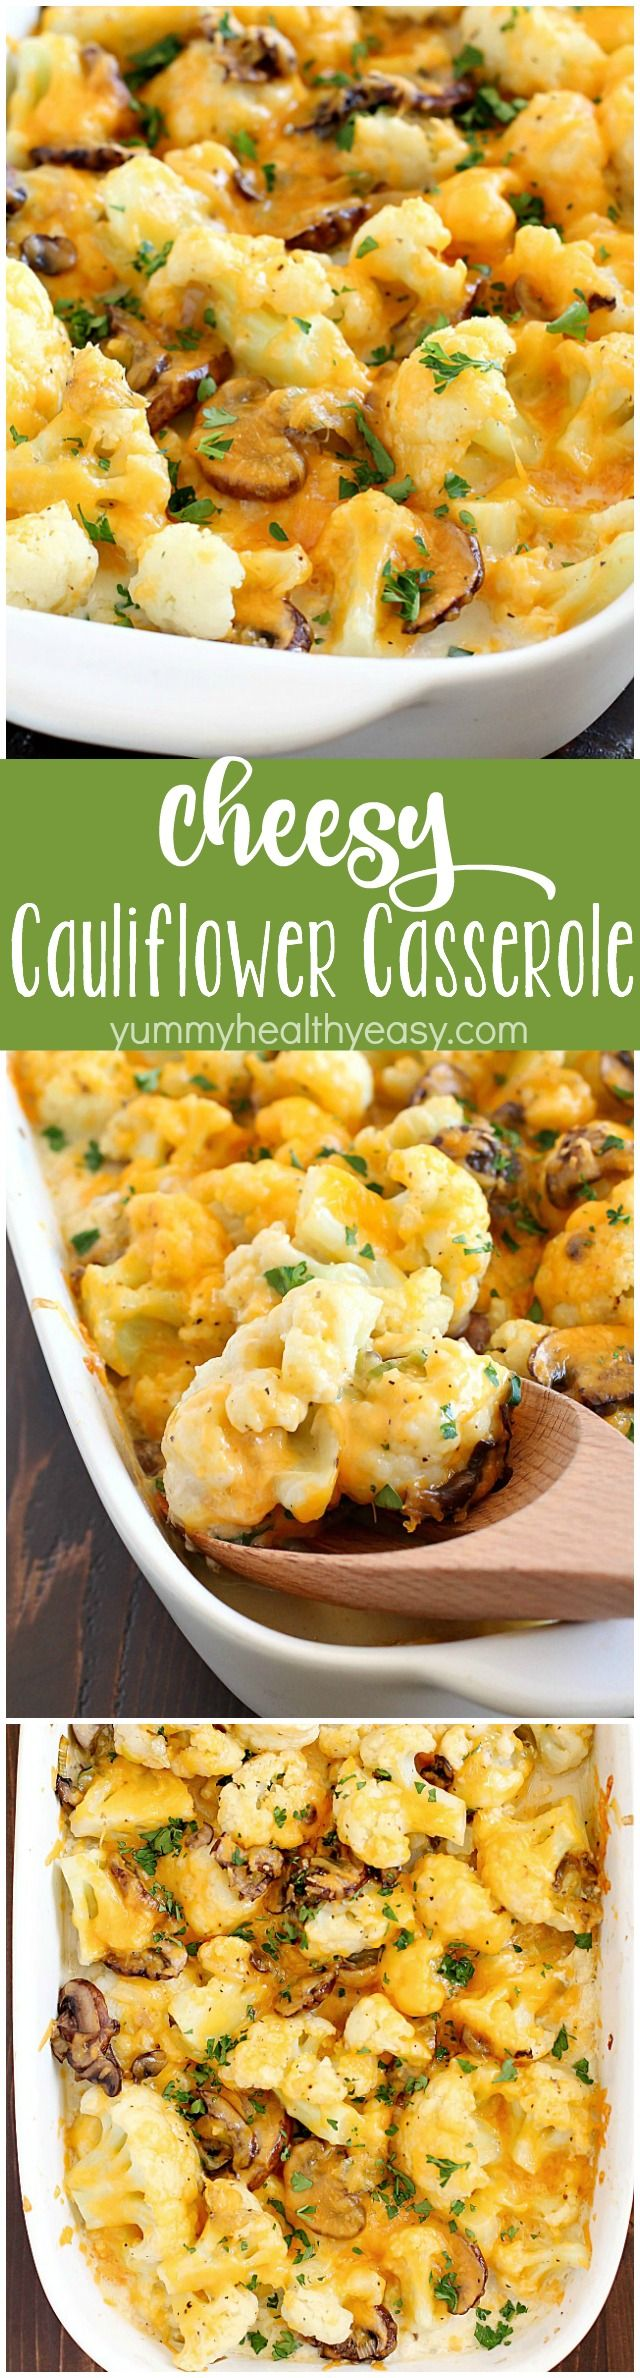 Cheesy Cauliflower Casserole makes the most delicious side dish or meatless main dish! Full of flavor with cauliflower, sautéed mushrooms & leeks, and an easy cheesy sauce that won't pack on the calories. This is incredible! AD